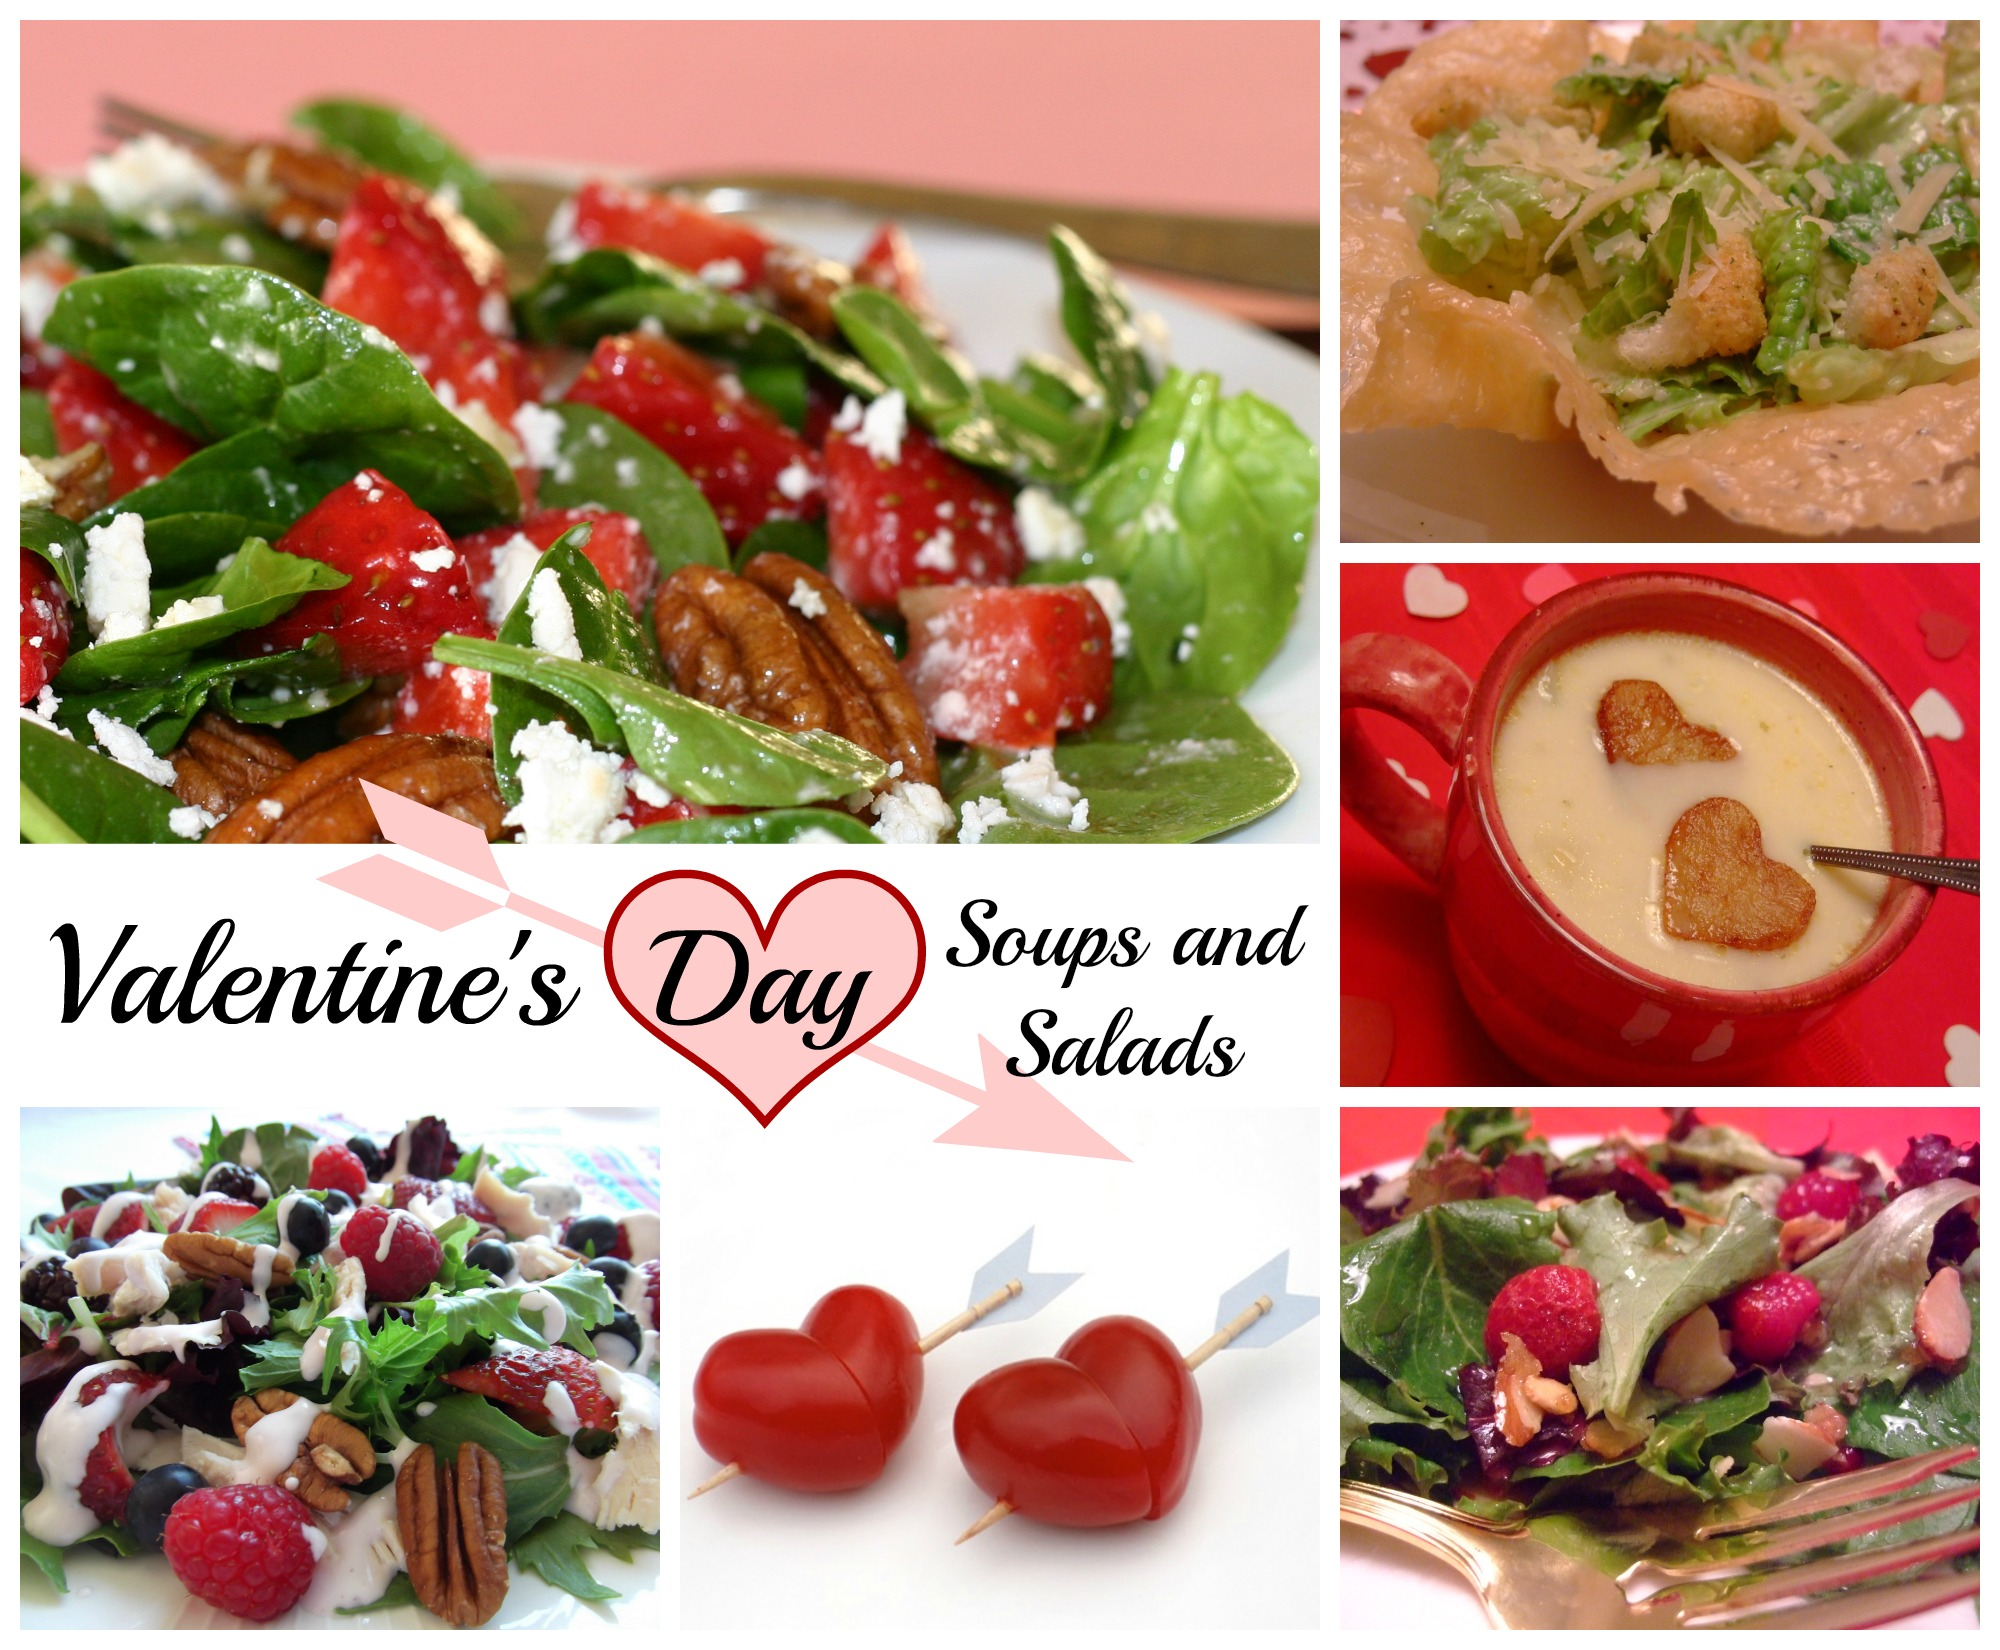 Valentine's Day Soup and Salad Ideas